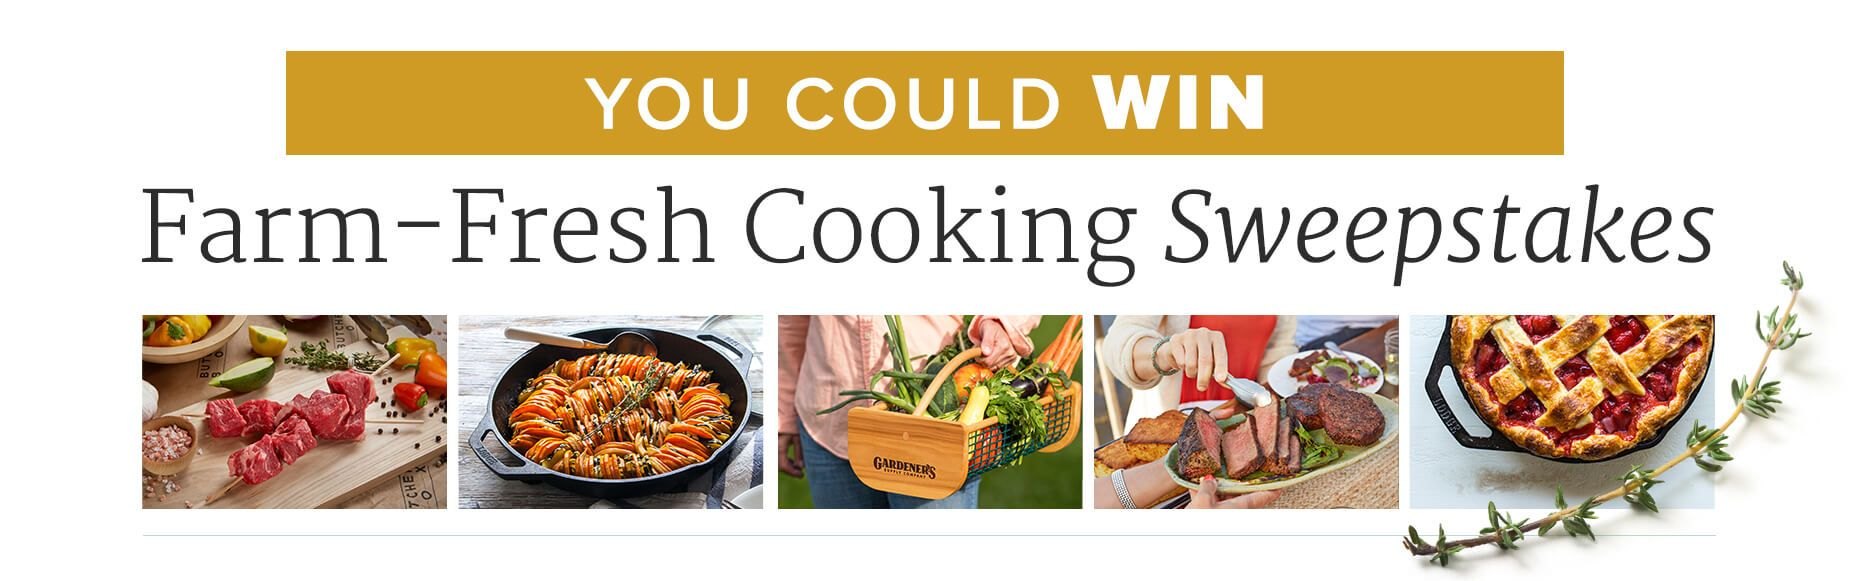 America\'s Test Kitchen Farm-Fresh Cooking Sweepstakes   Cooking ...